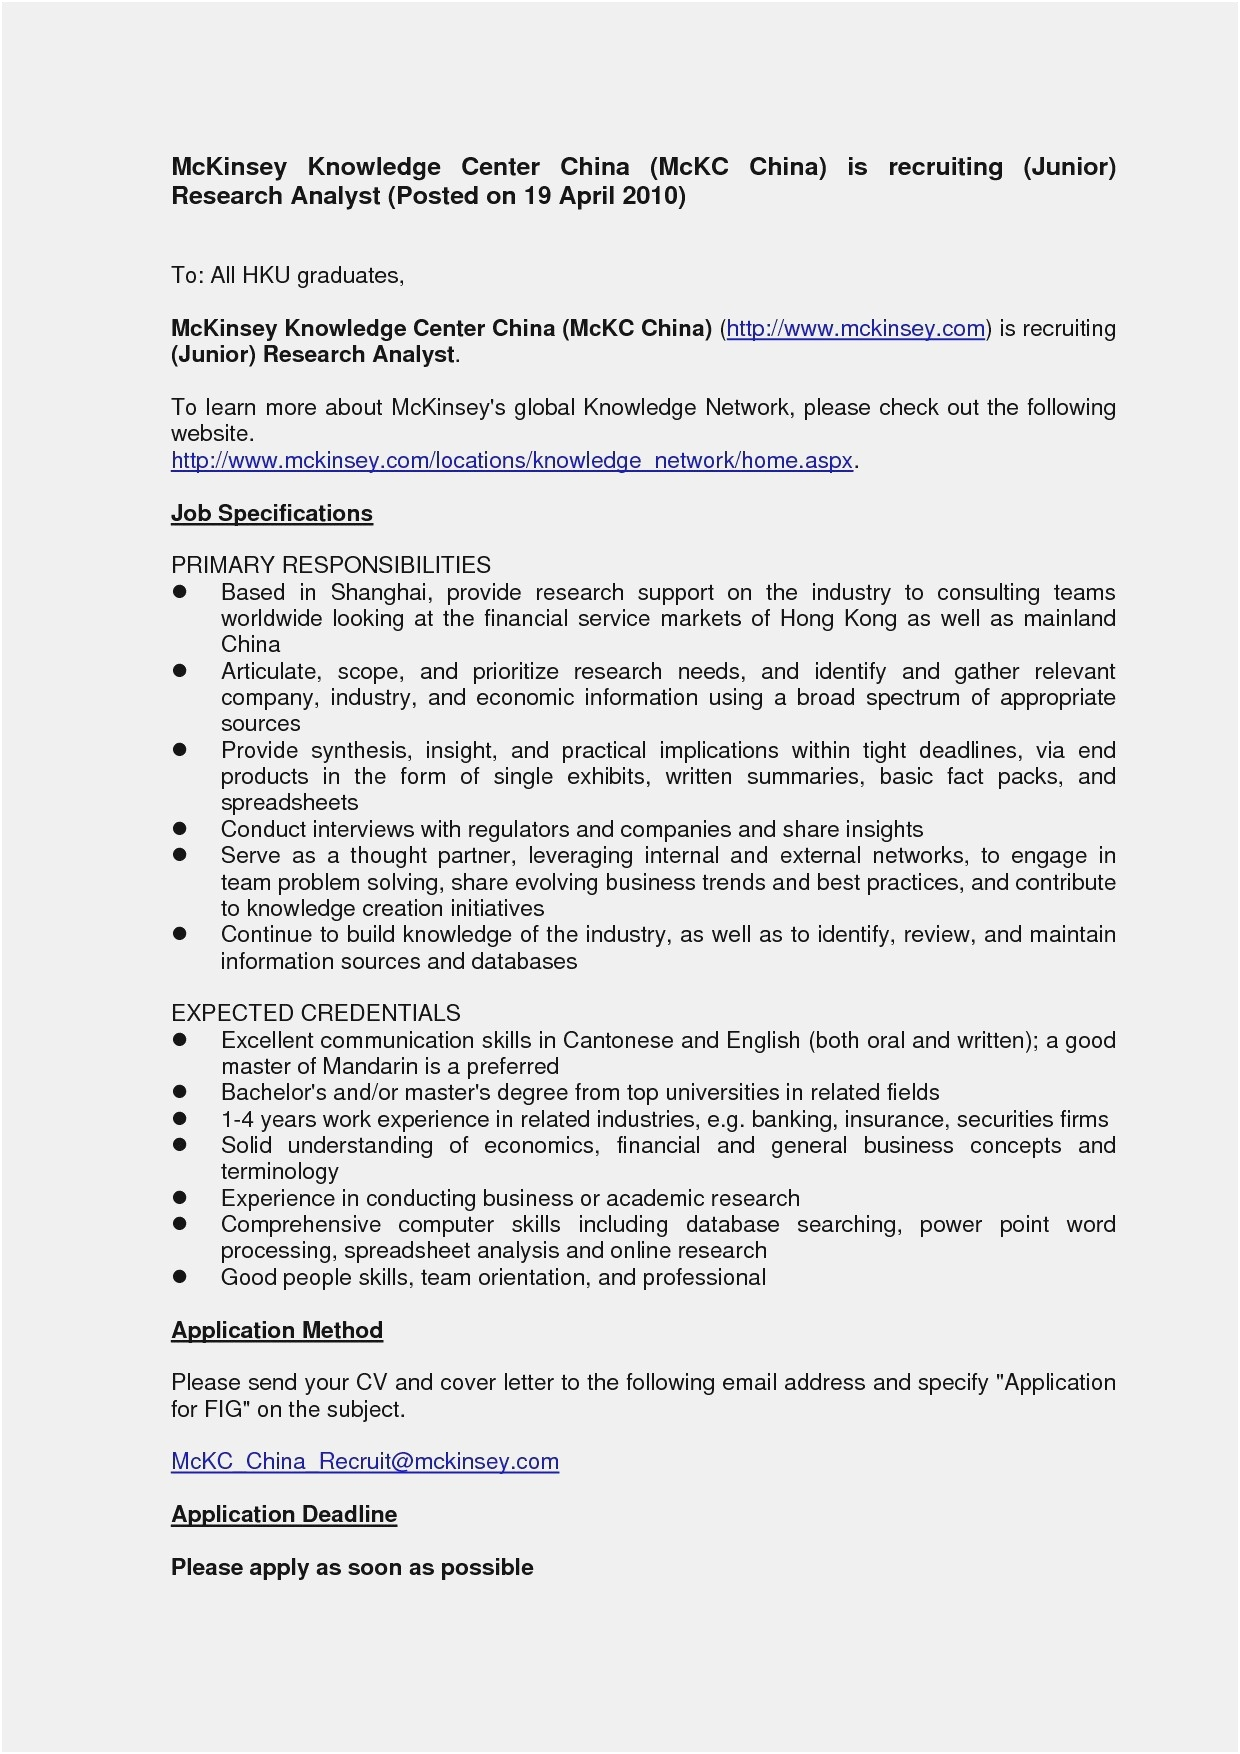 Offer Letter Template Google Docs - Inspirational Newsletter Templates Google Docs